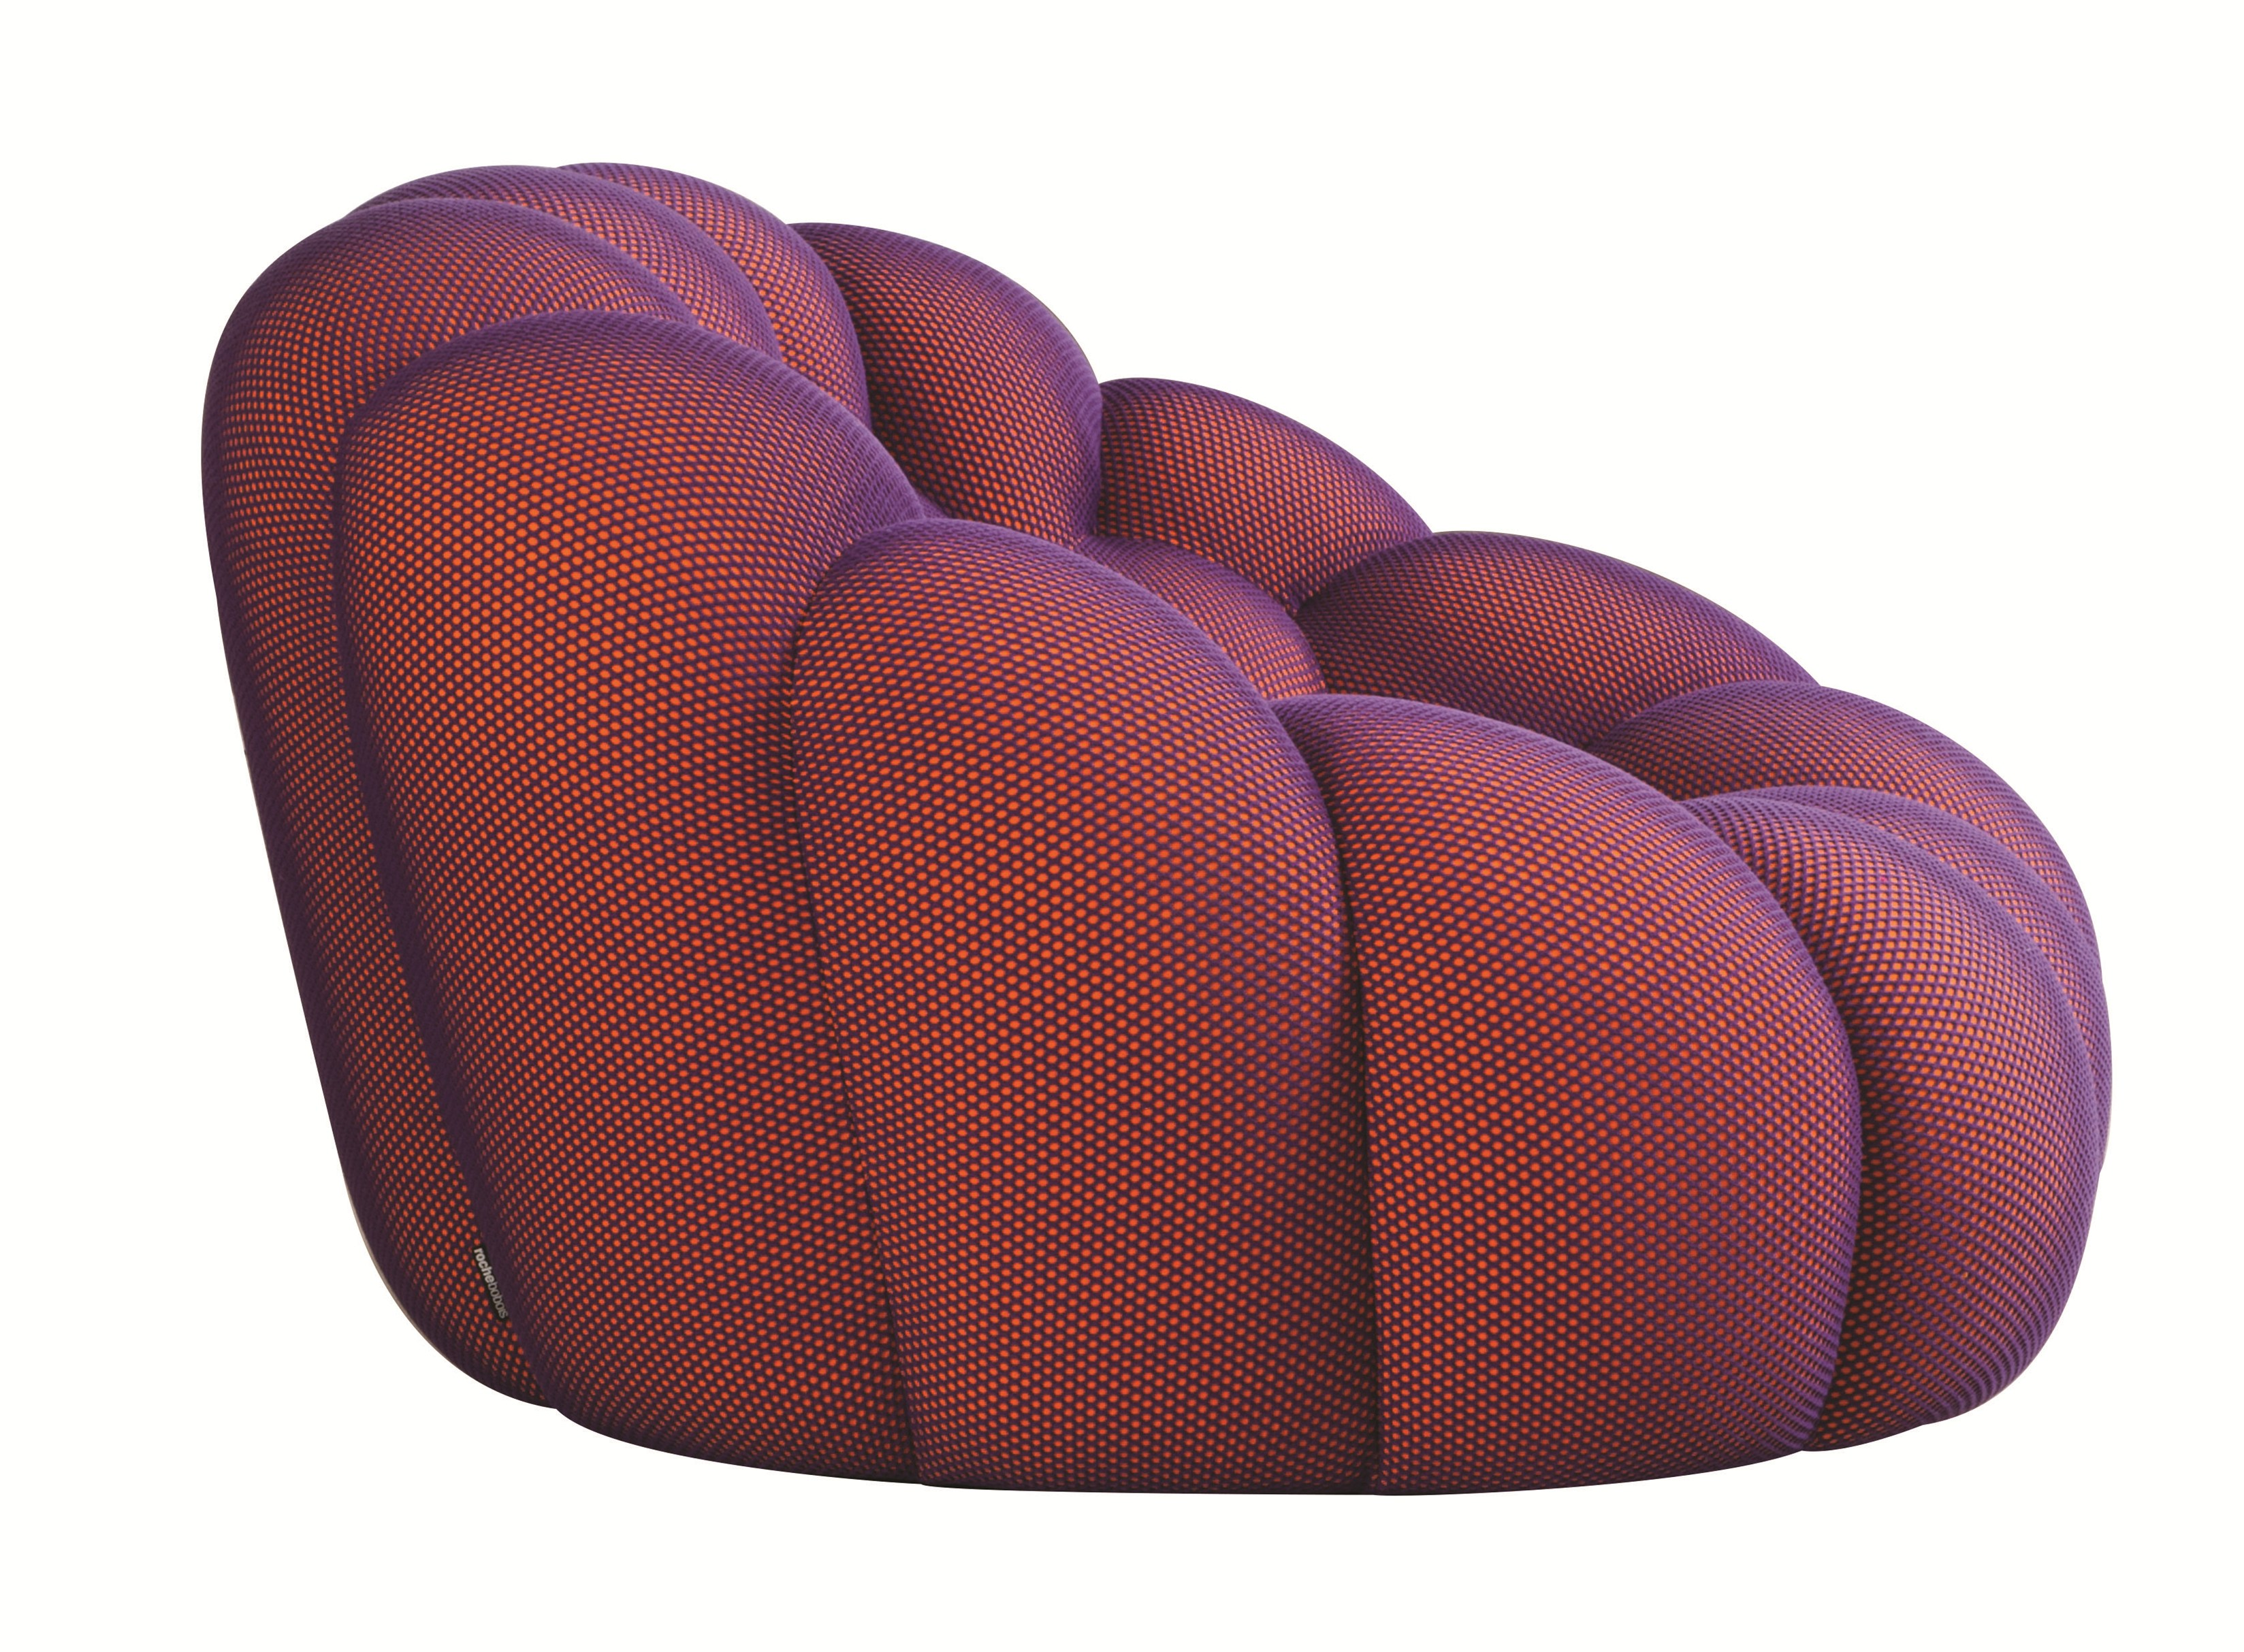 bubble fauteuil by roche bobois design sacha lakic. Black Bedroom Furniture Sets. Home Design Ideas